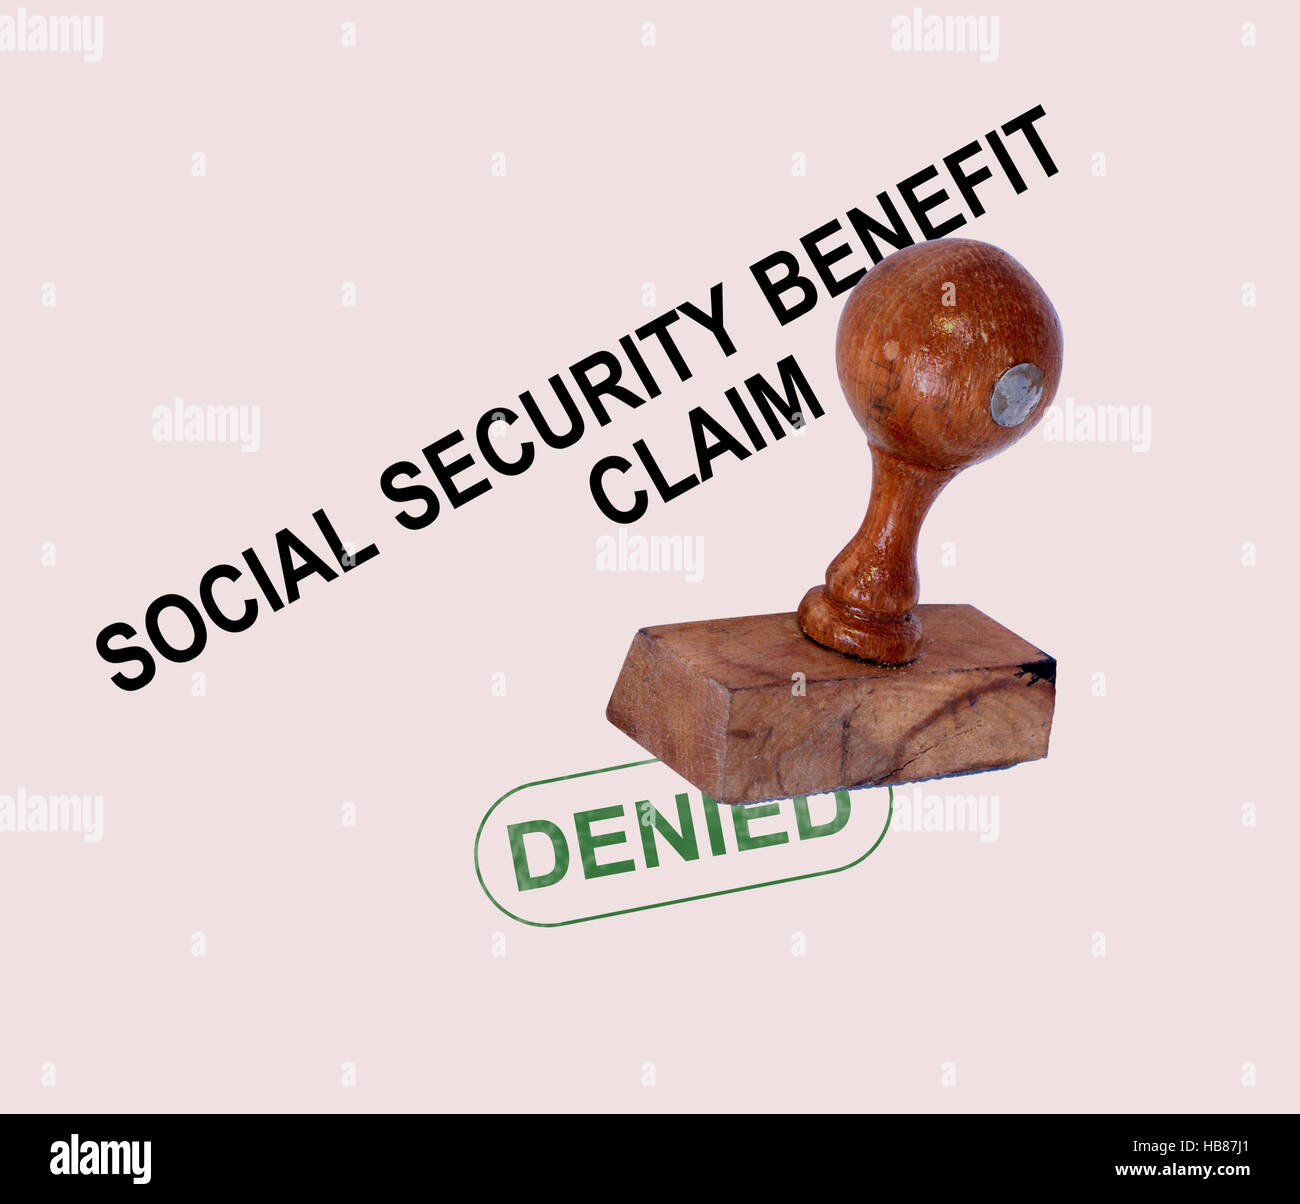 La sécurité sociale a rejeté la revendication Stamp Photo Stock